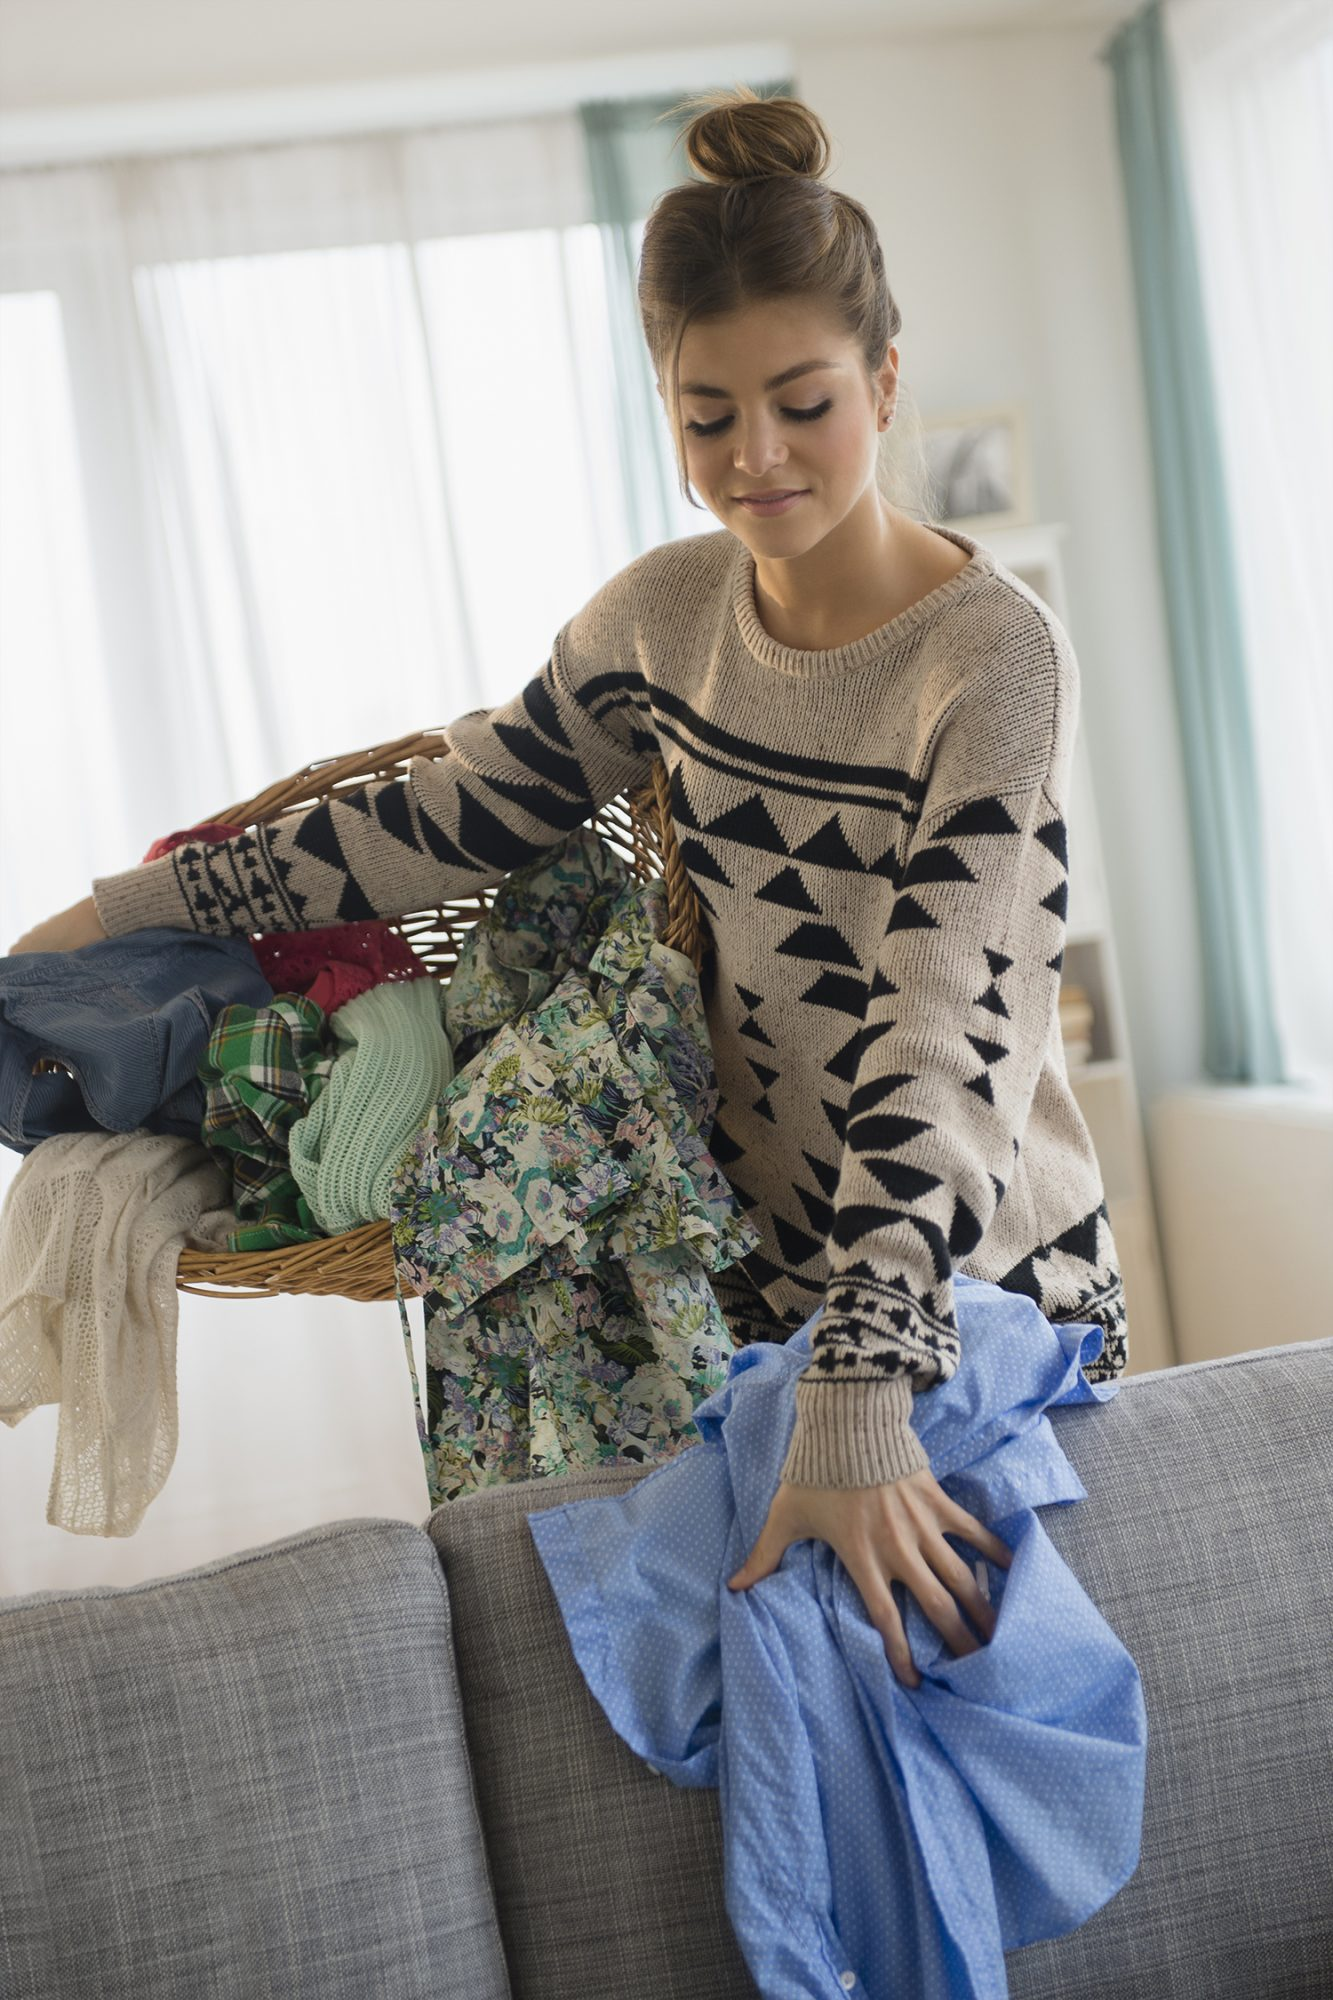 Woman Doing Her Laundry and Smiling While Picking Up Clothes